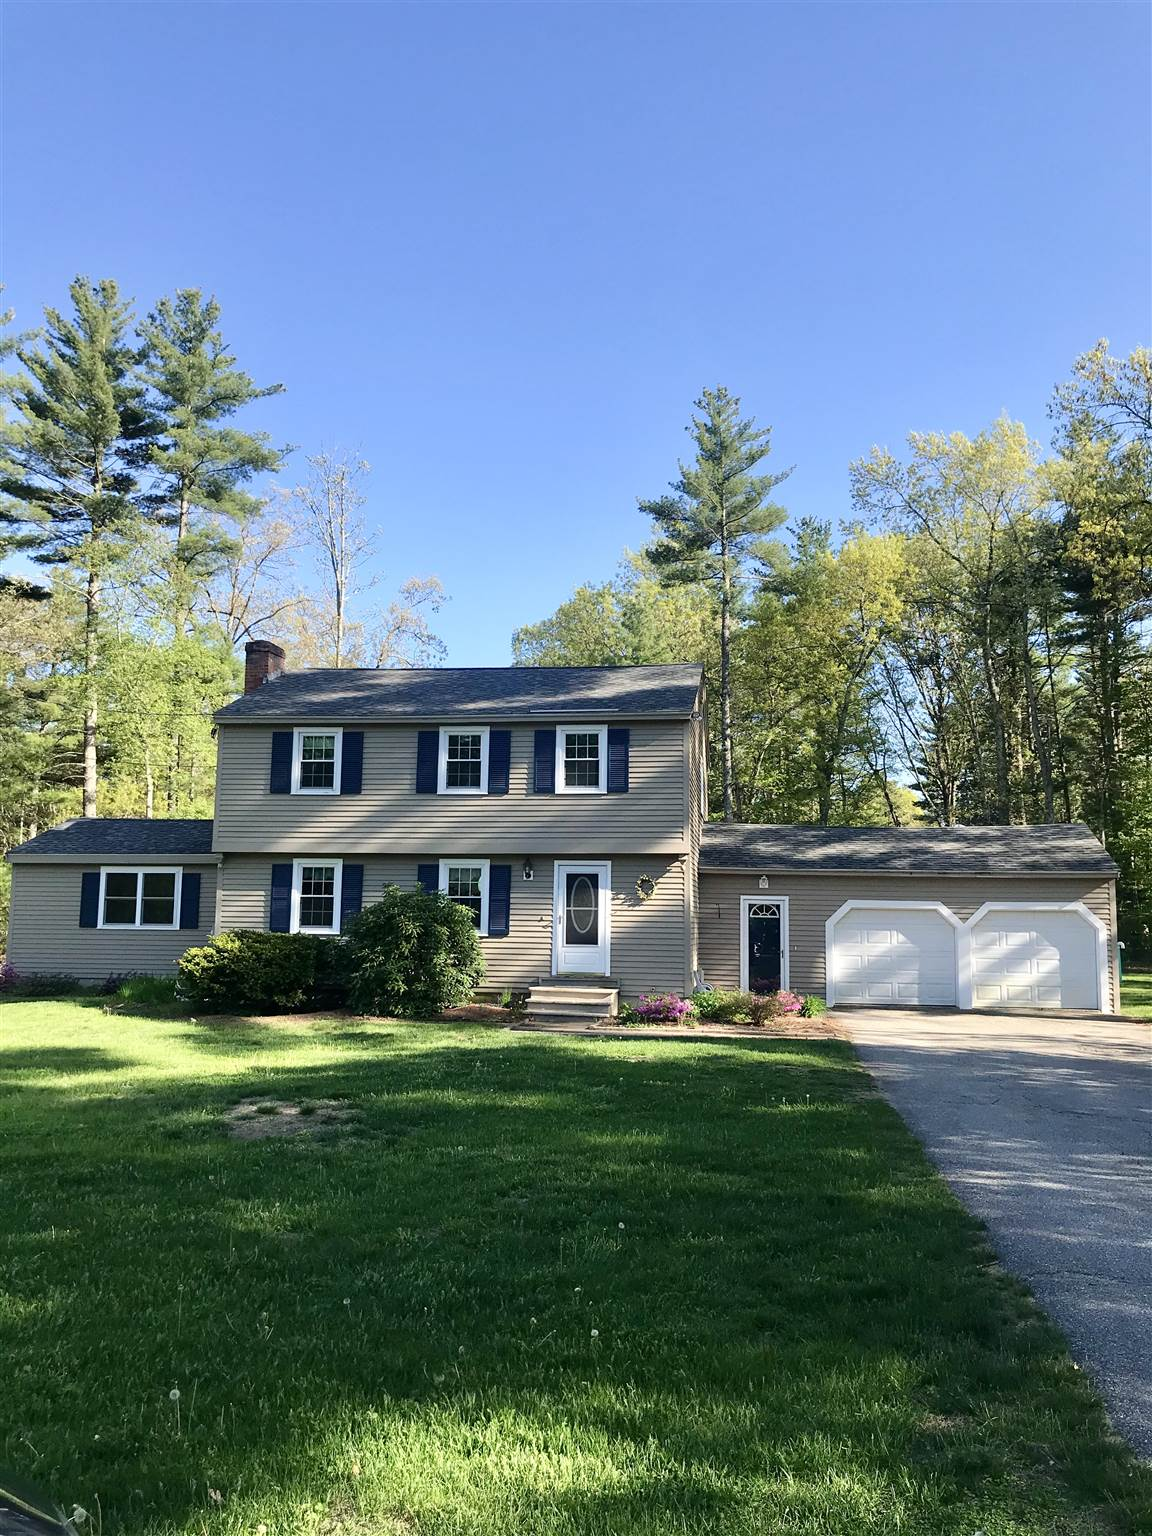 MLS 4807001: 7 Windsor Drive, Amherst NH